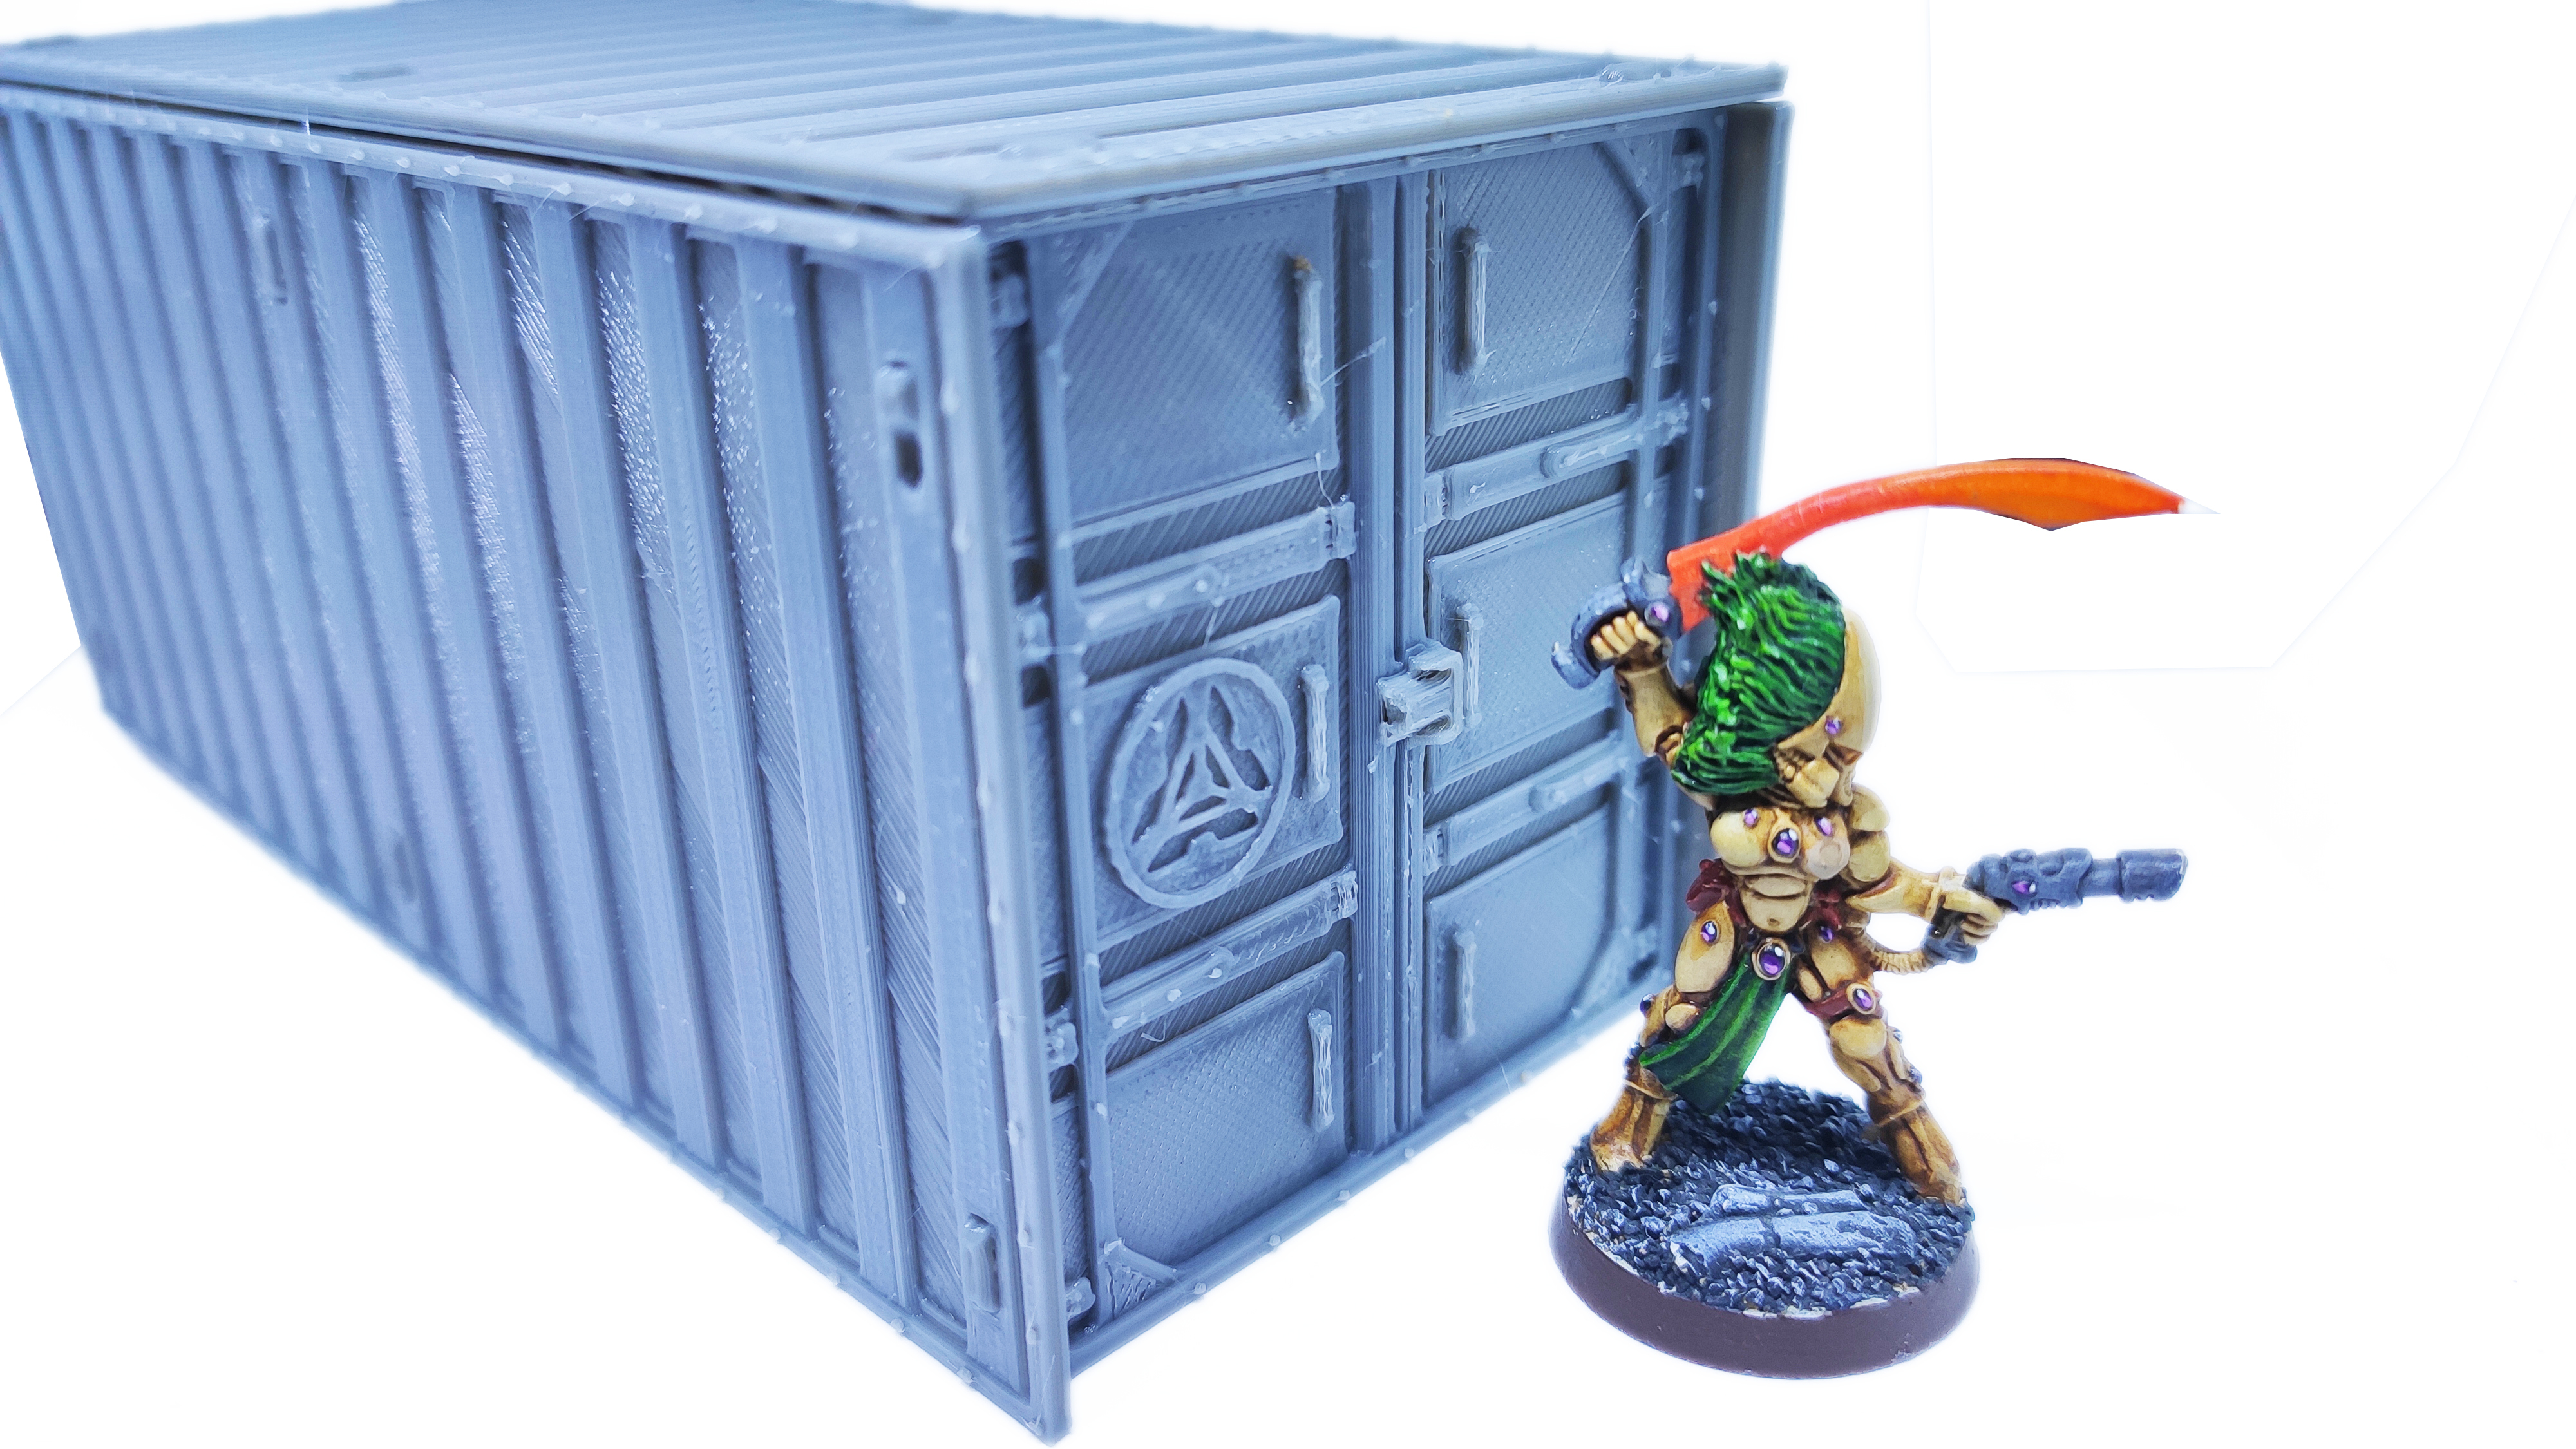 IMG_20200918_073435.jpg Download free STL file Containers for wargame terrain 6.25x6.25x15cm • Template to 3D print, Alario